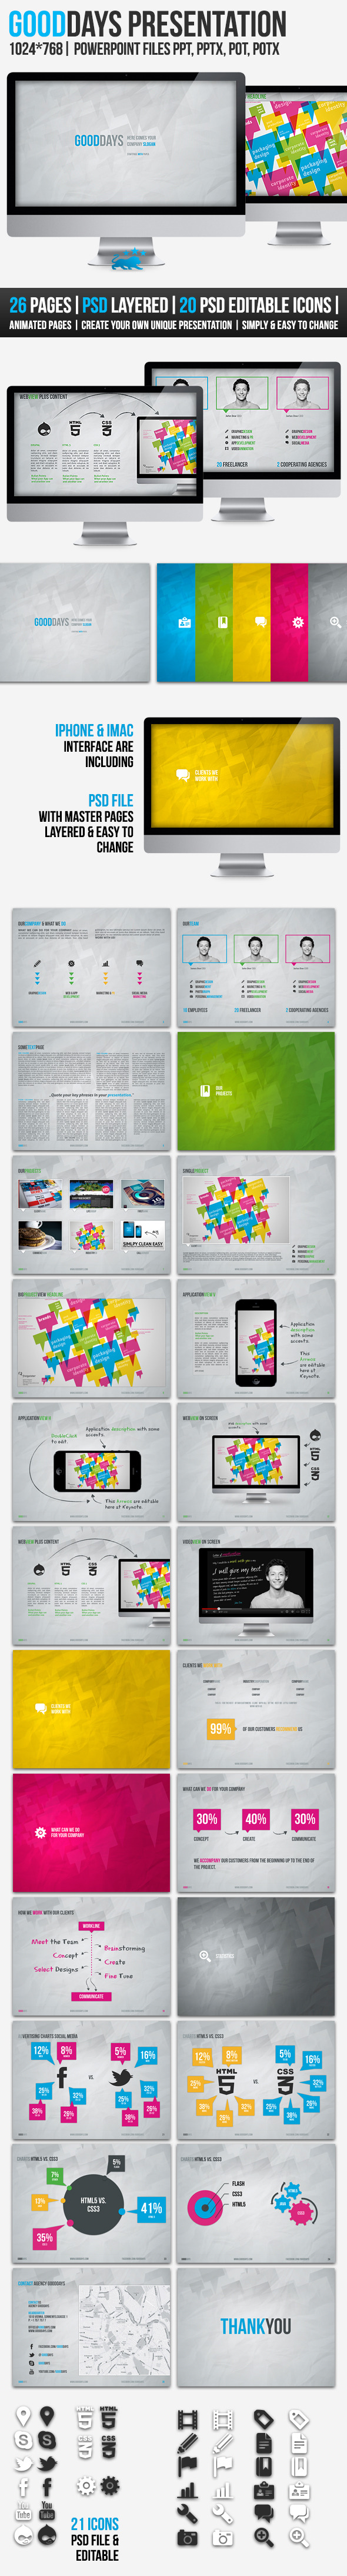 GOODDAYS | 26 Pages | POWERPOINT Presentation - PowerPoint Templates Presentation Templates